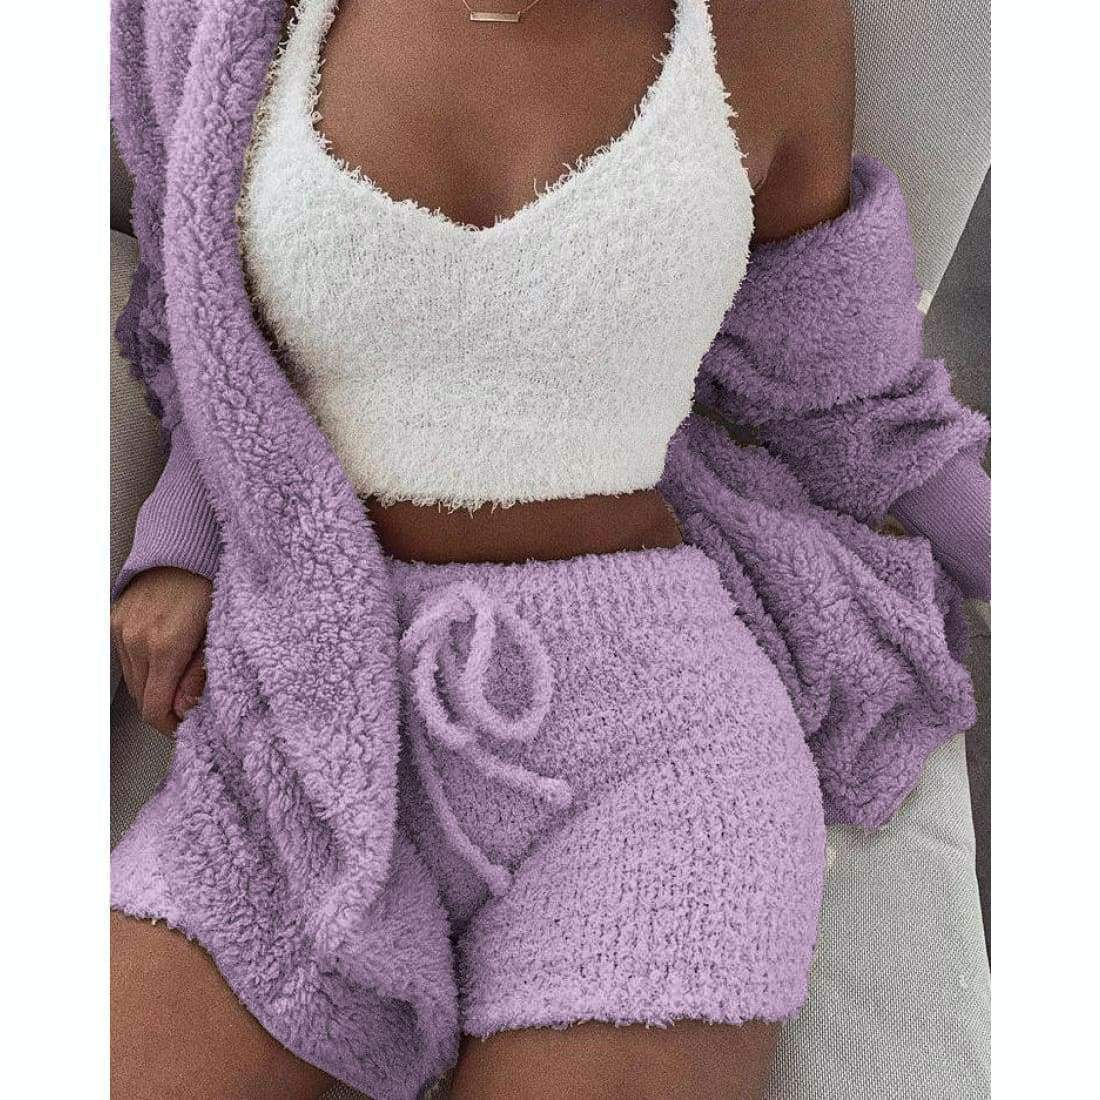 Cozy knit set (3 Pieces) - Cozy Purple / S